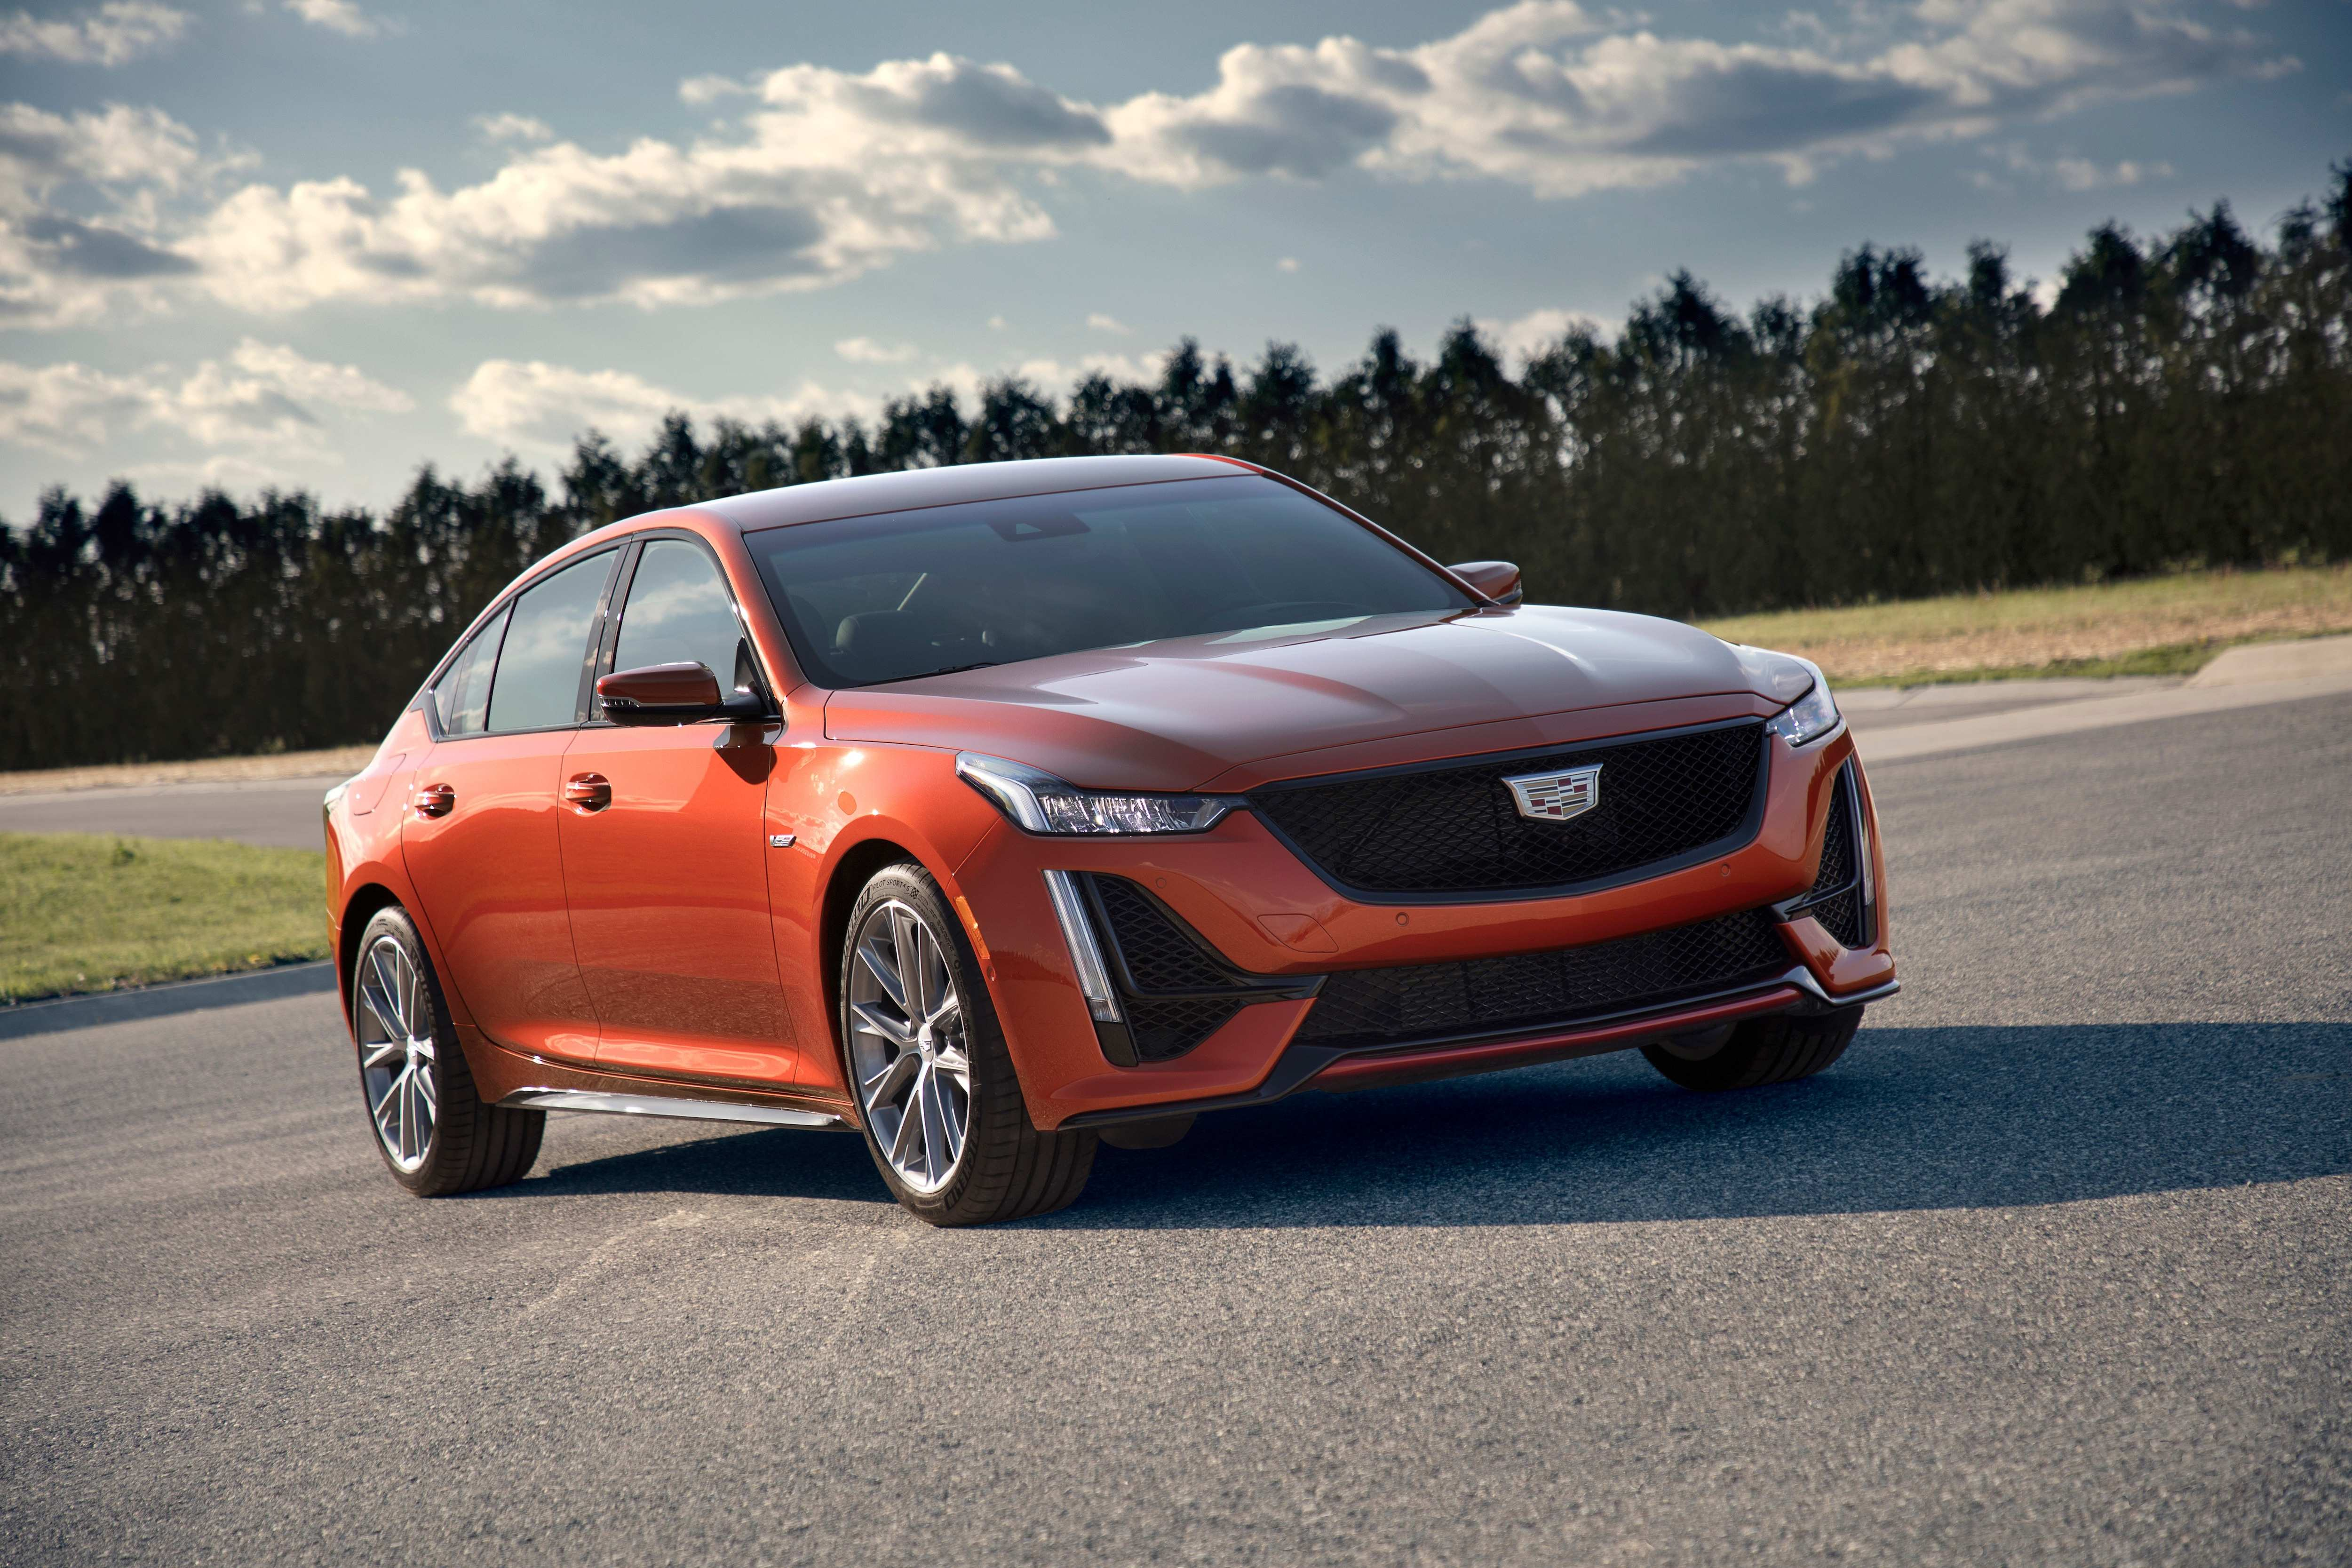 20 Best 2020 Cadillac Cts V Horsepower Configurations